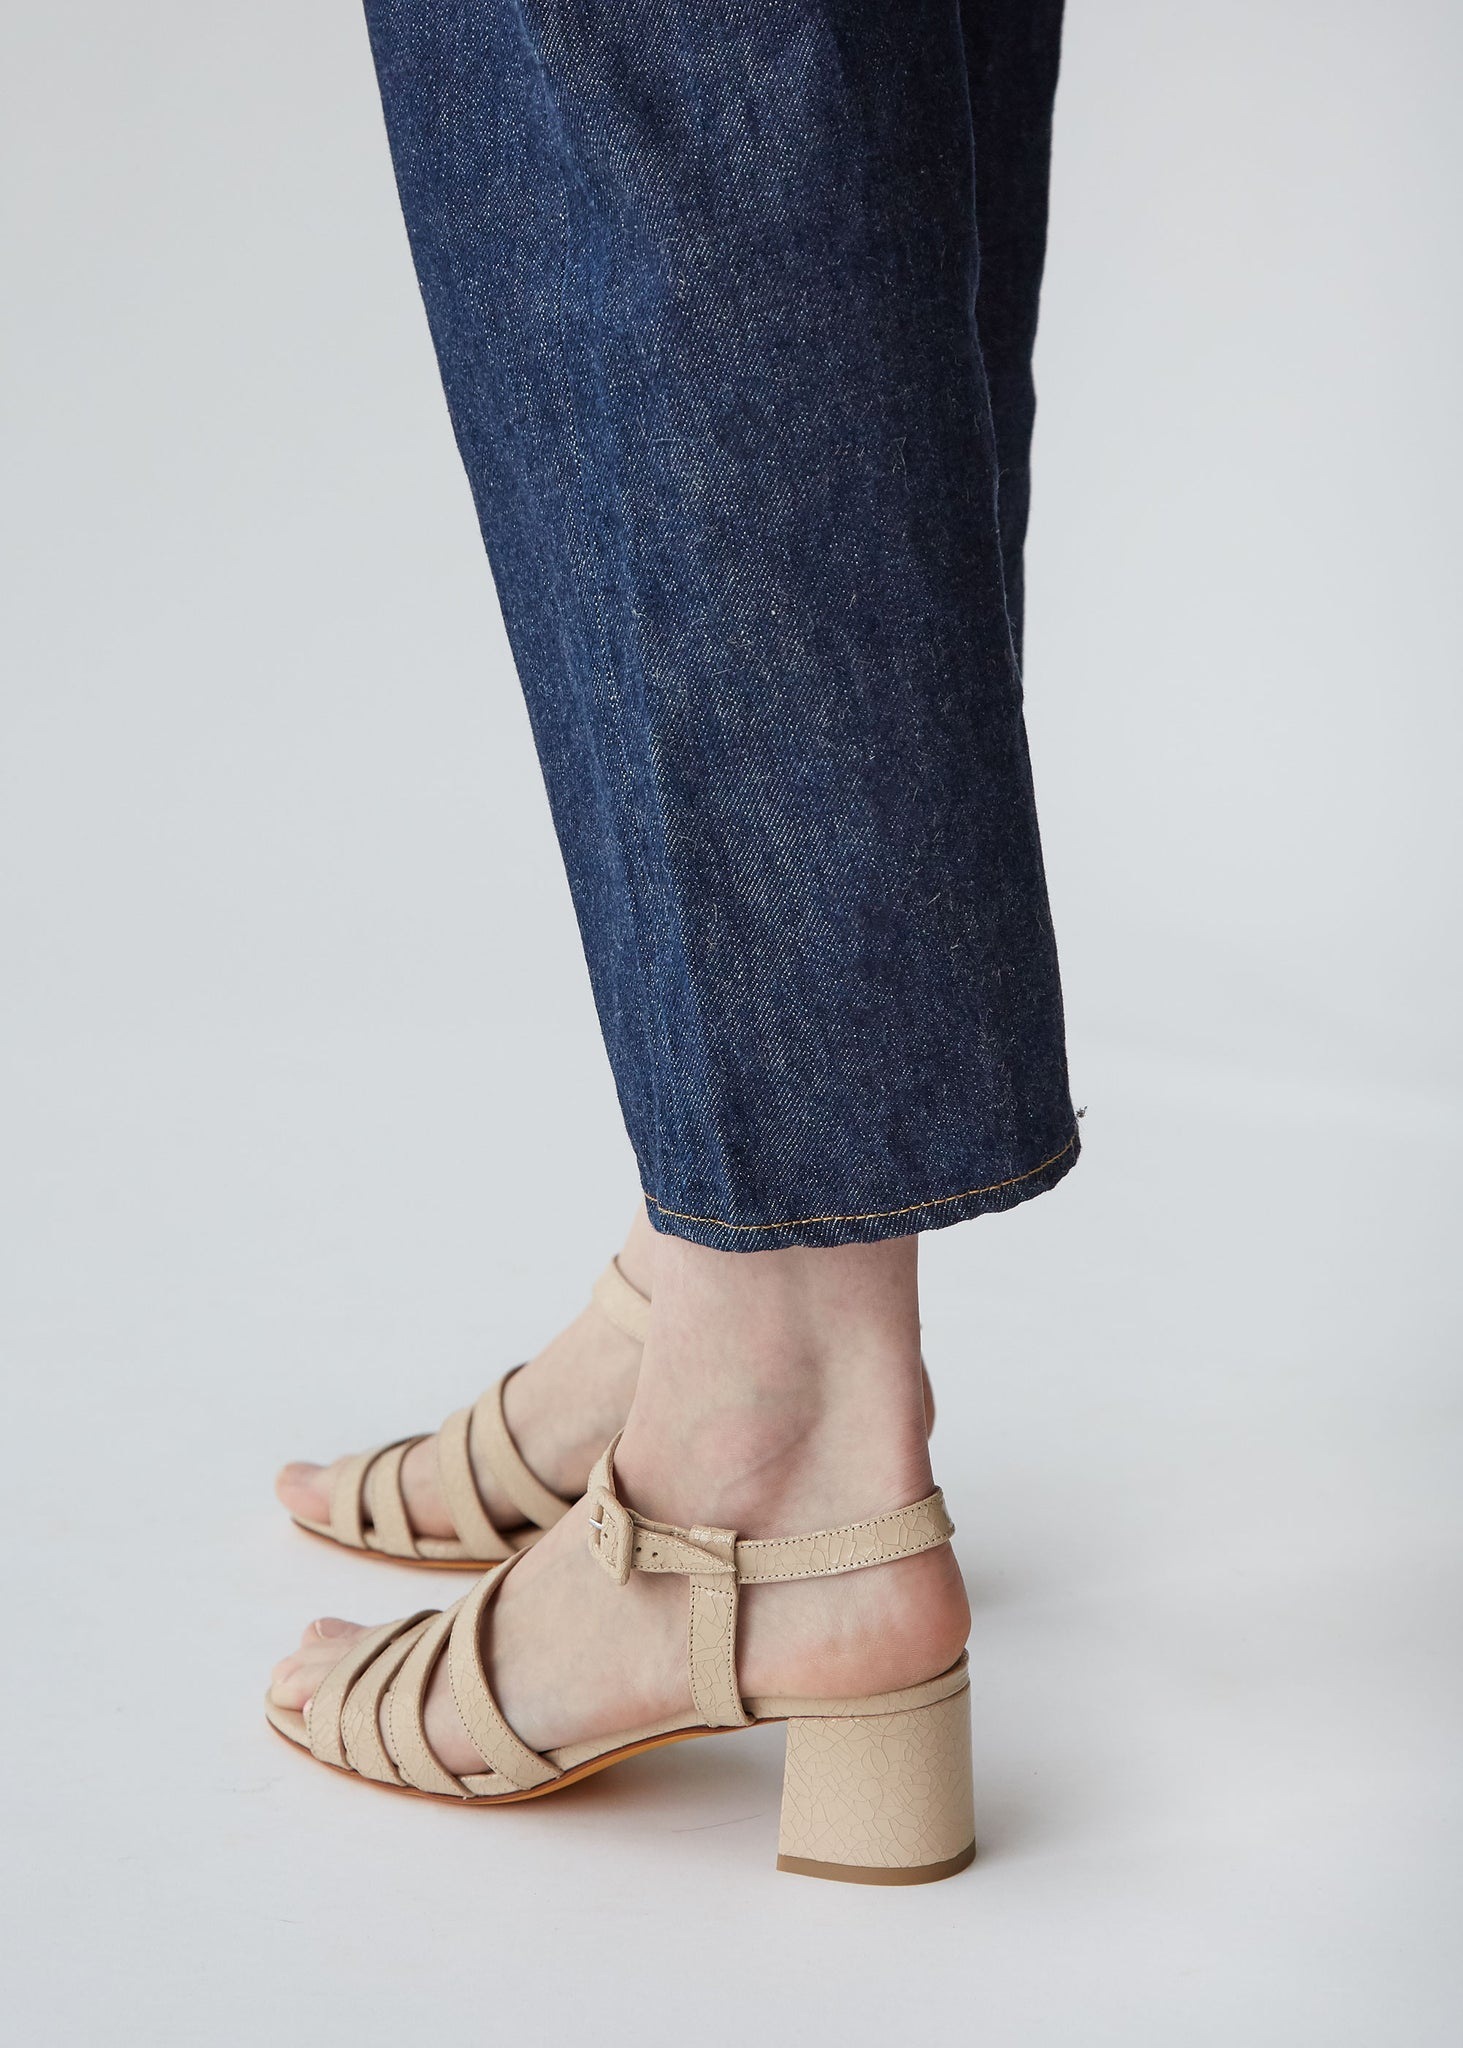 Palma Low Sandal in Buff Crackle